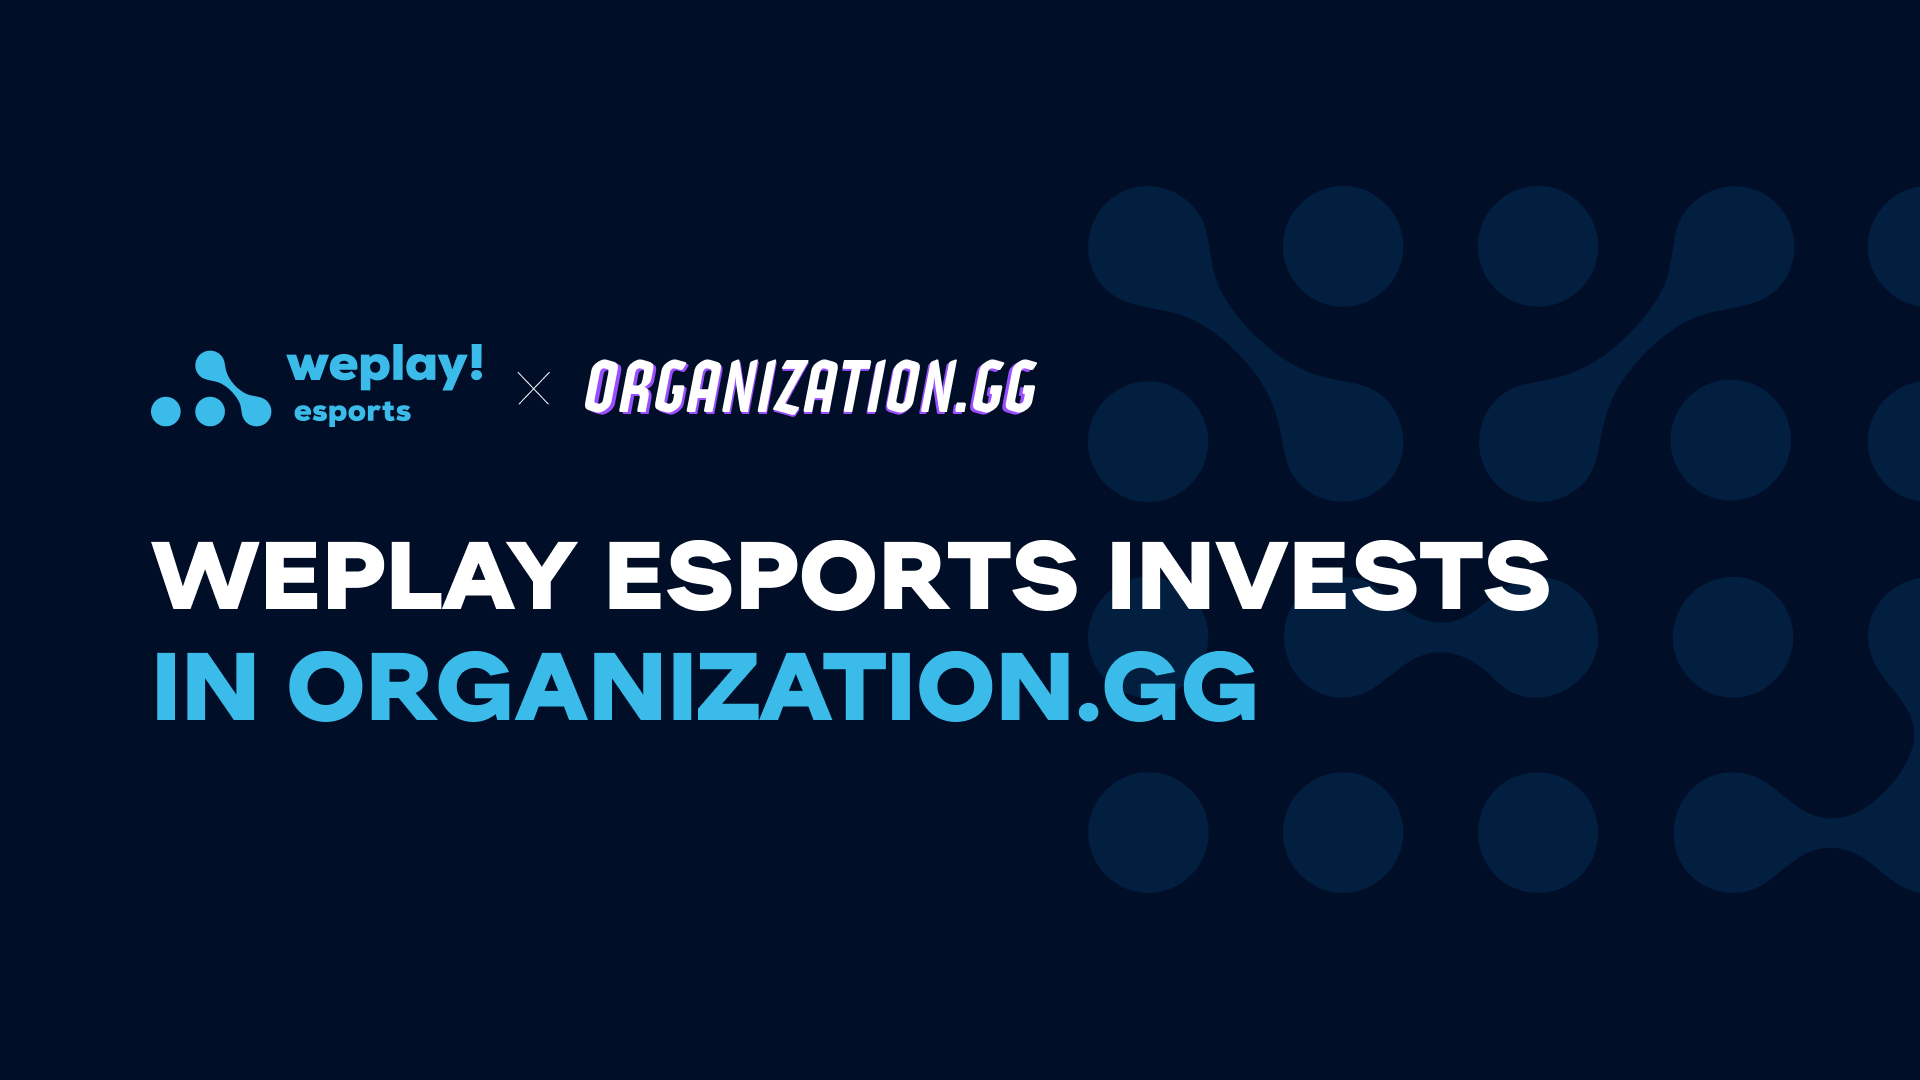 WePlay Esports invests in Organization.GG